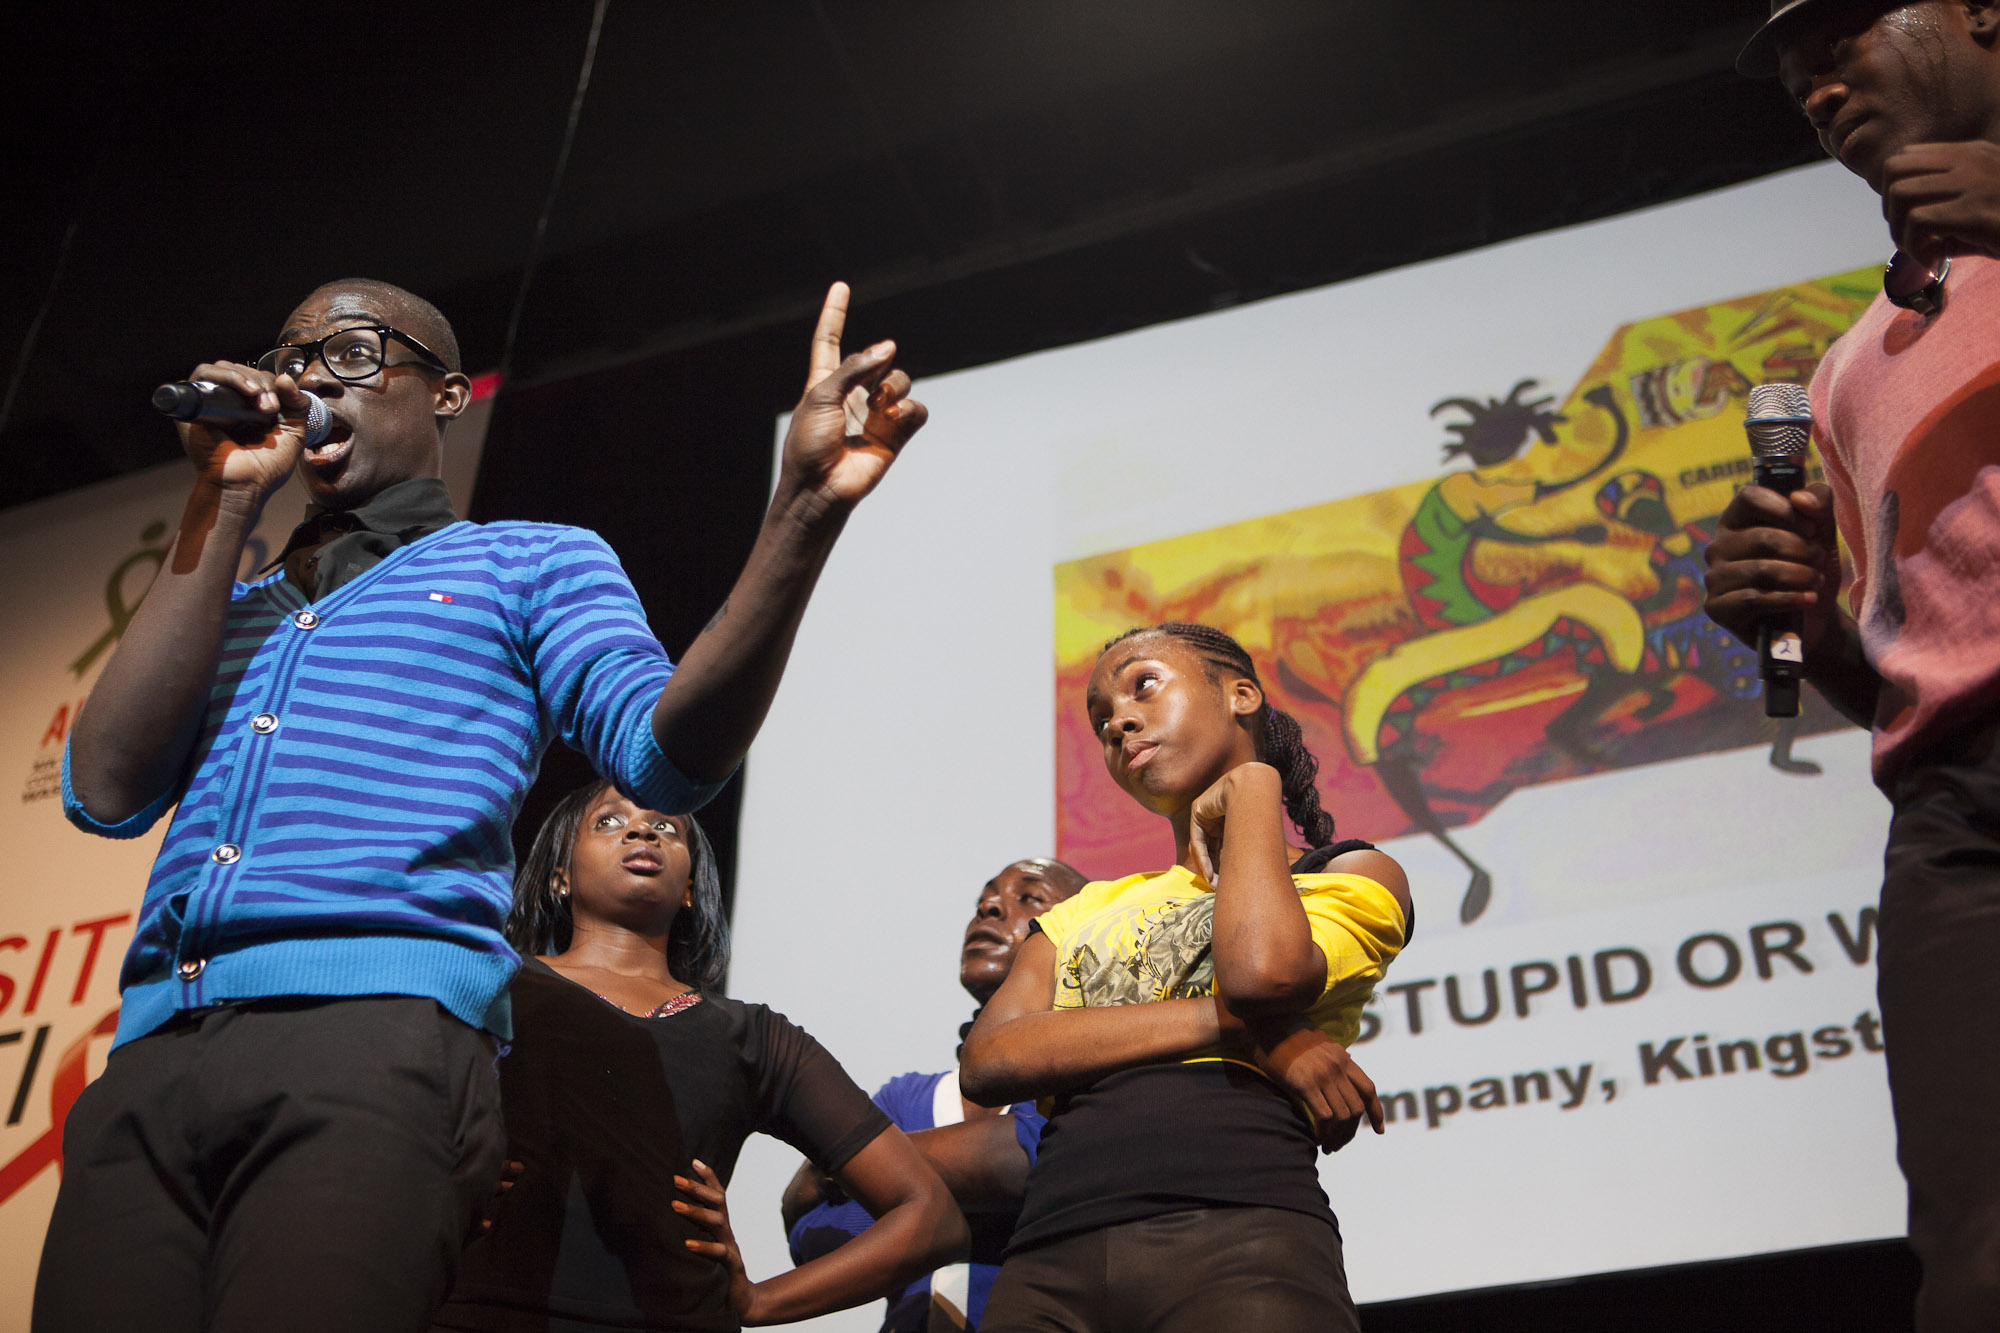 Safe, Stupid or What? The Ashe Performing Arts Company, based in Kingston, Jamaica, performed a musical television game on Thursday in the Global Village. The show used song and dance to explain how HIV is transmitted.